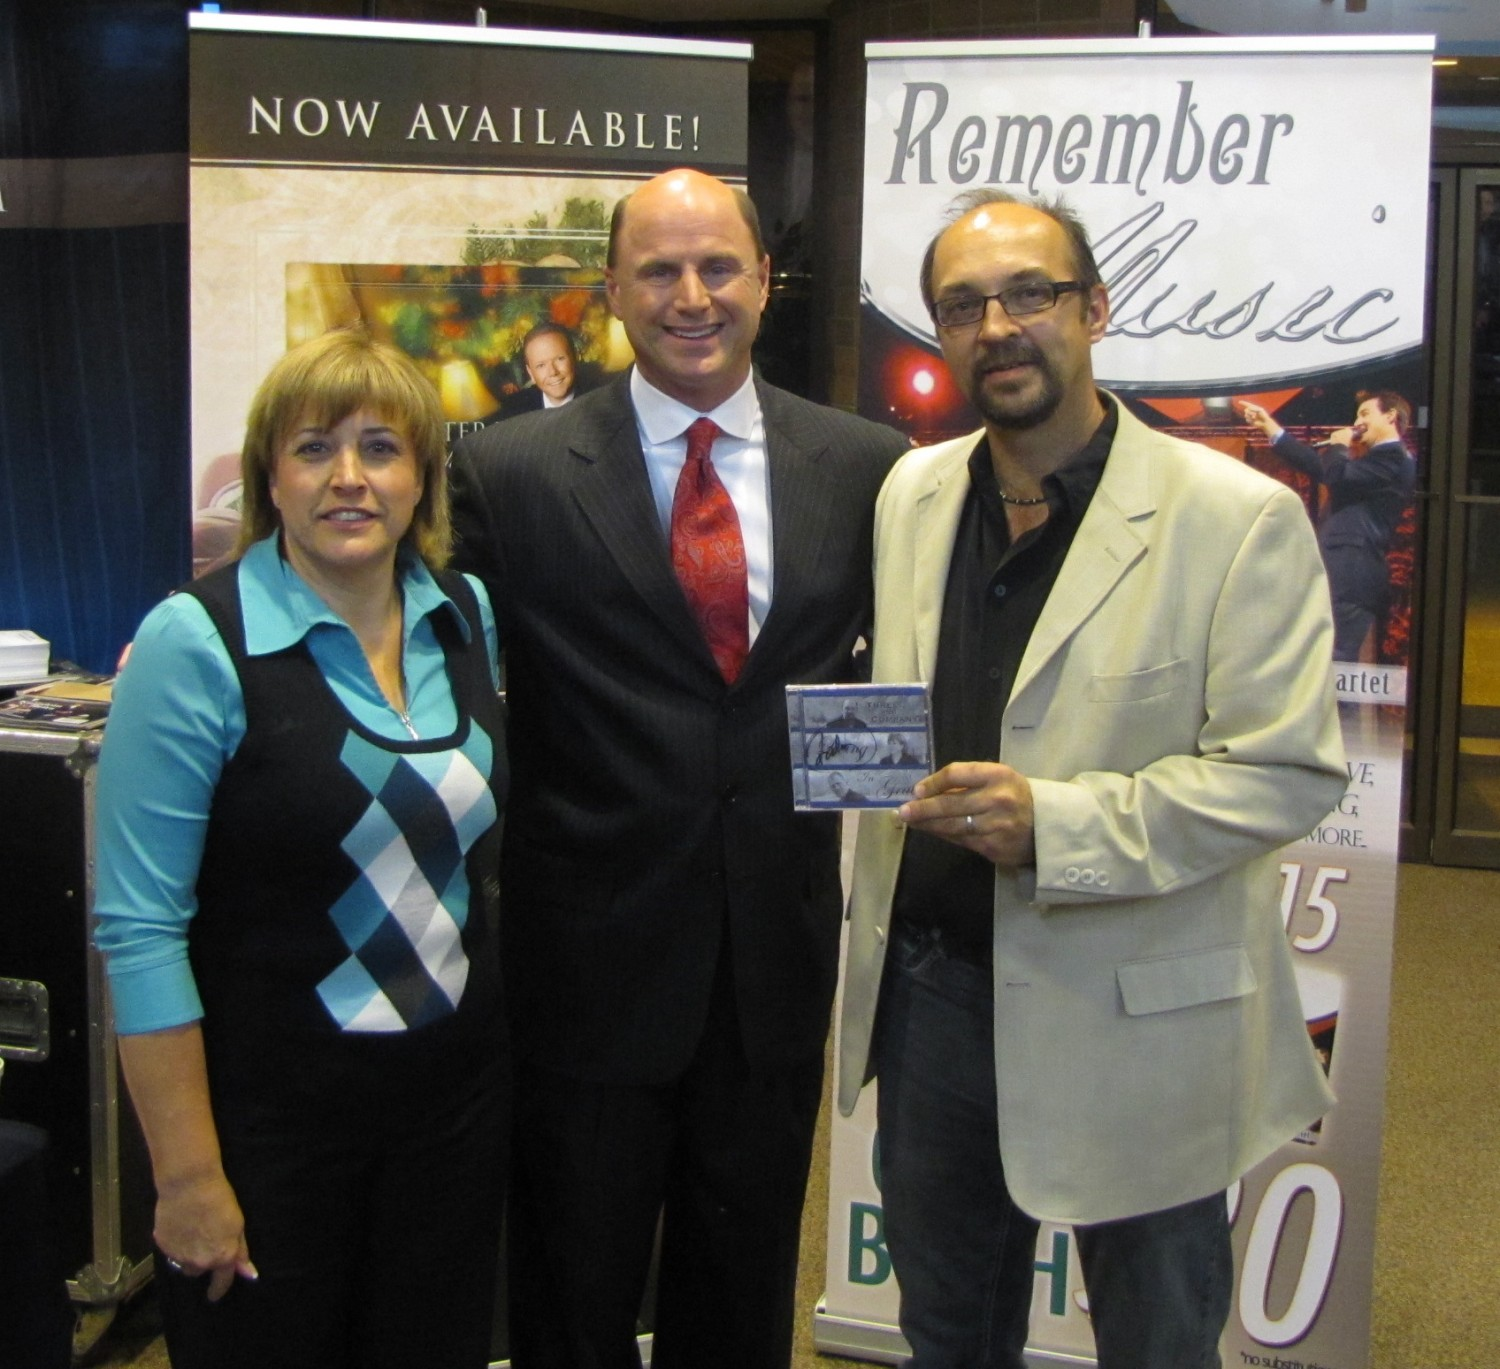 """Rodney Griffin with our new CD, he wrote the song """"I Love Living In Grace"""